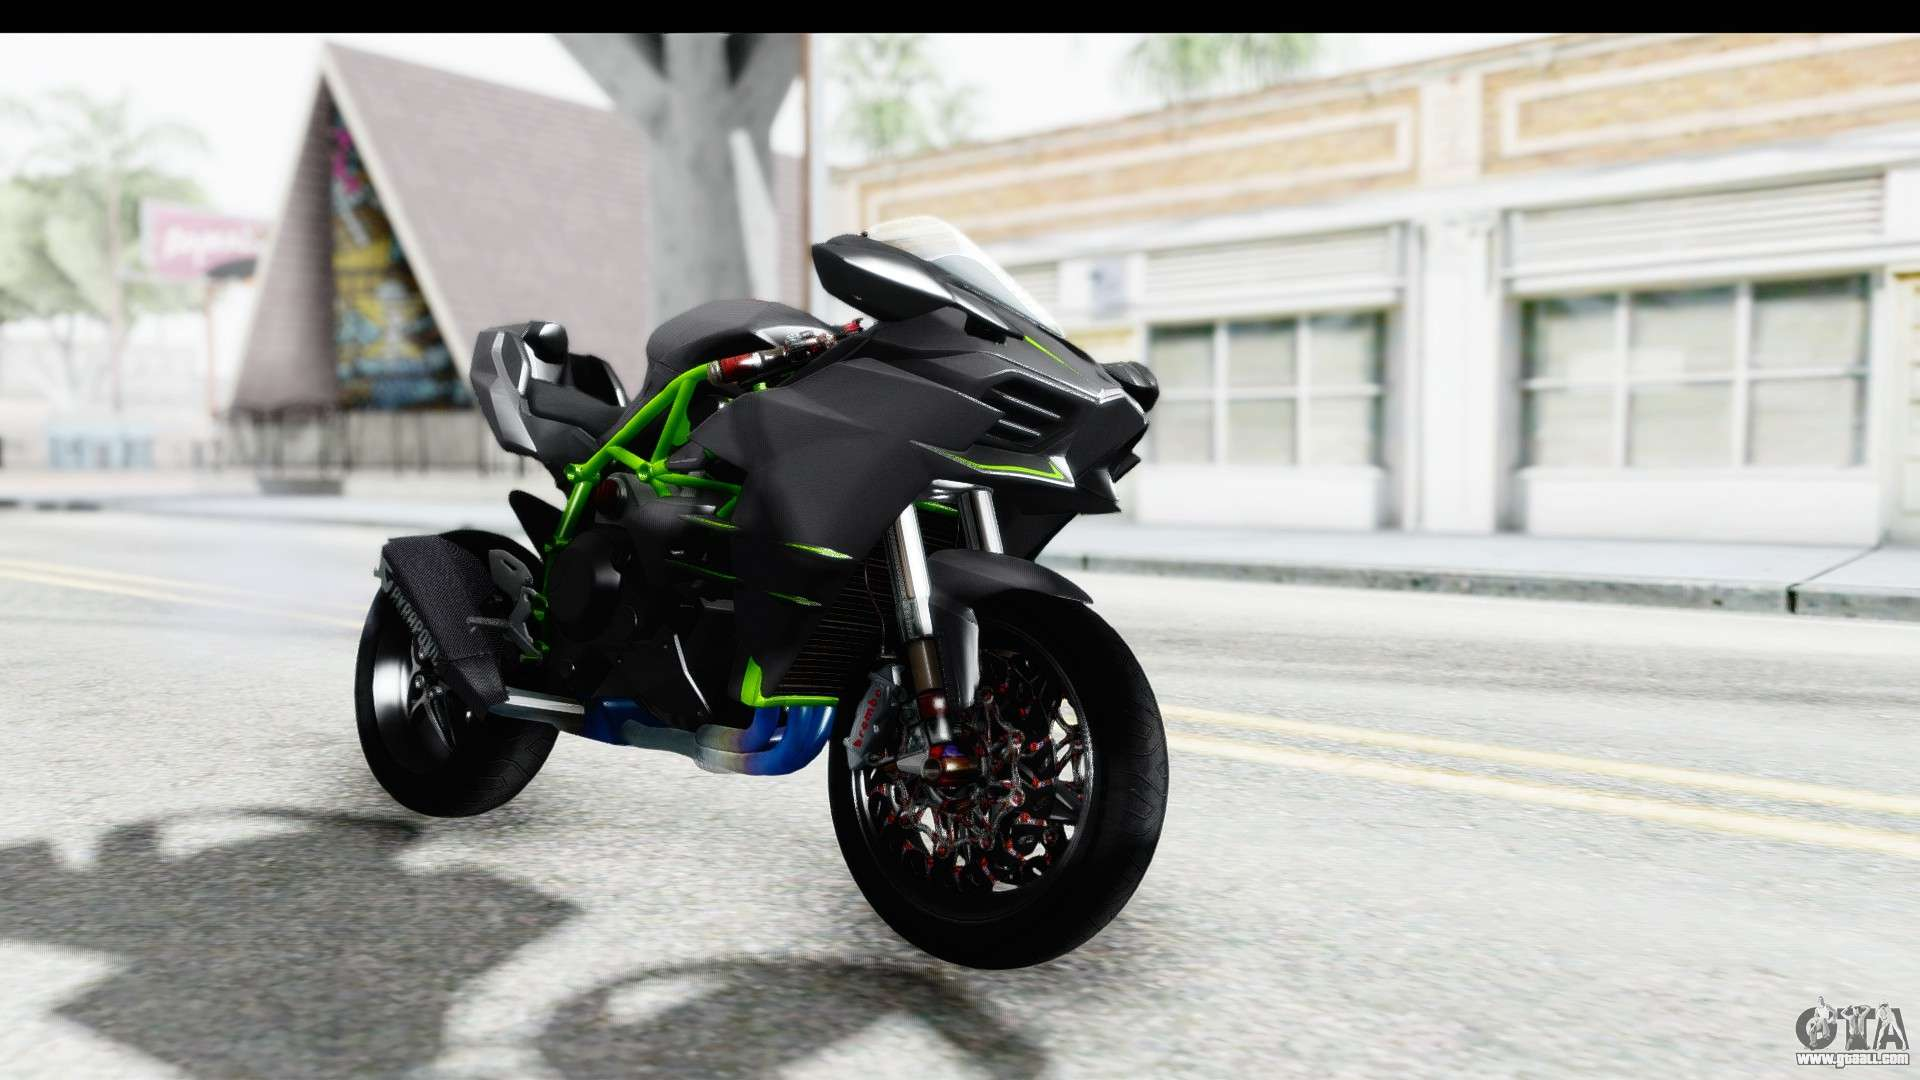 Kawasaki Ninja H2 And H2r Price Rumors Surface Video 87691 besides Yamaha R1 together with Bmw S1000rr Black together with 2018 Kawasaki Z900rs furthermore Yamaha Fzs 1000 Fazer Photos 2016. on kawasaki ninja sport bike wallpapers